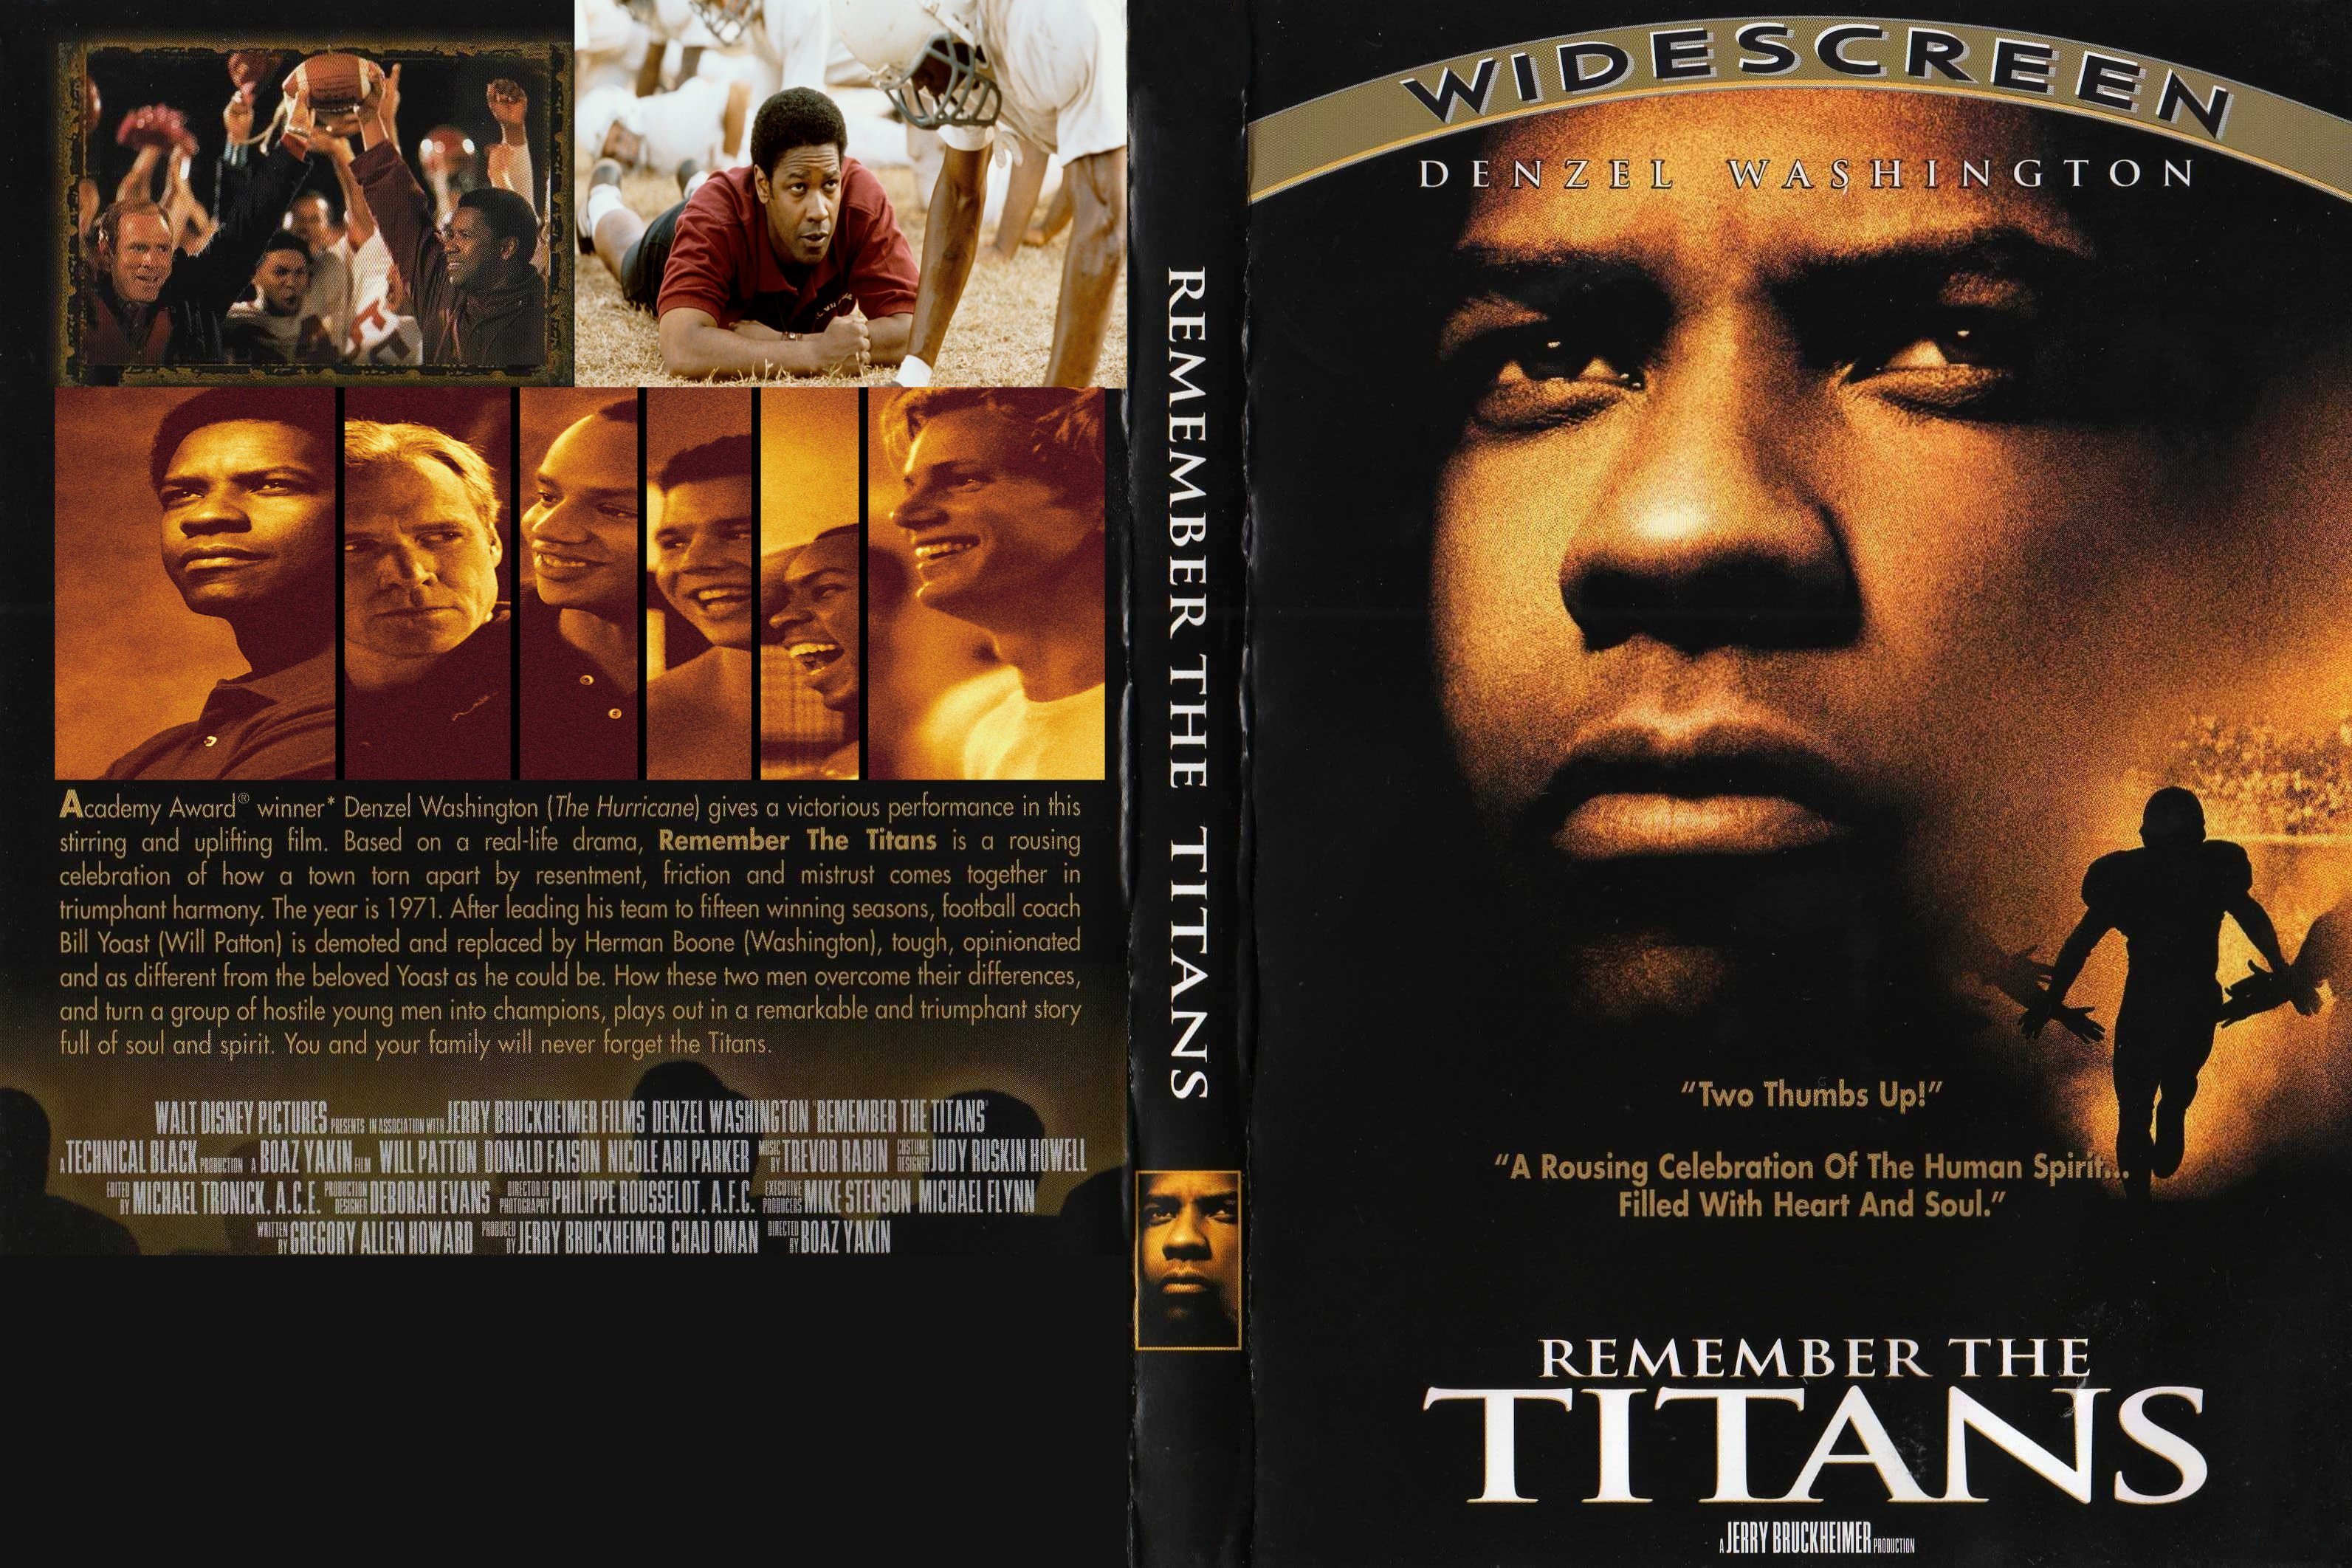 film analysis remember the titans Remember the titans: a theoretical analysis rameca leary disney studios released the critically -acclaimed film, remember the titans, based on the team's story.